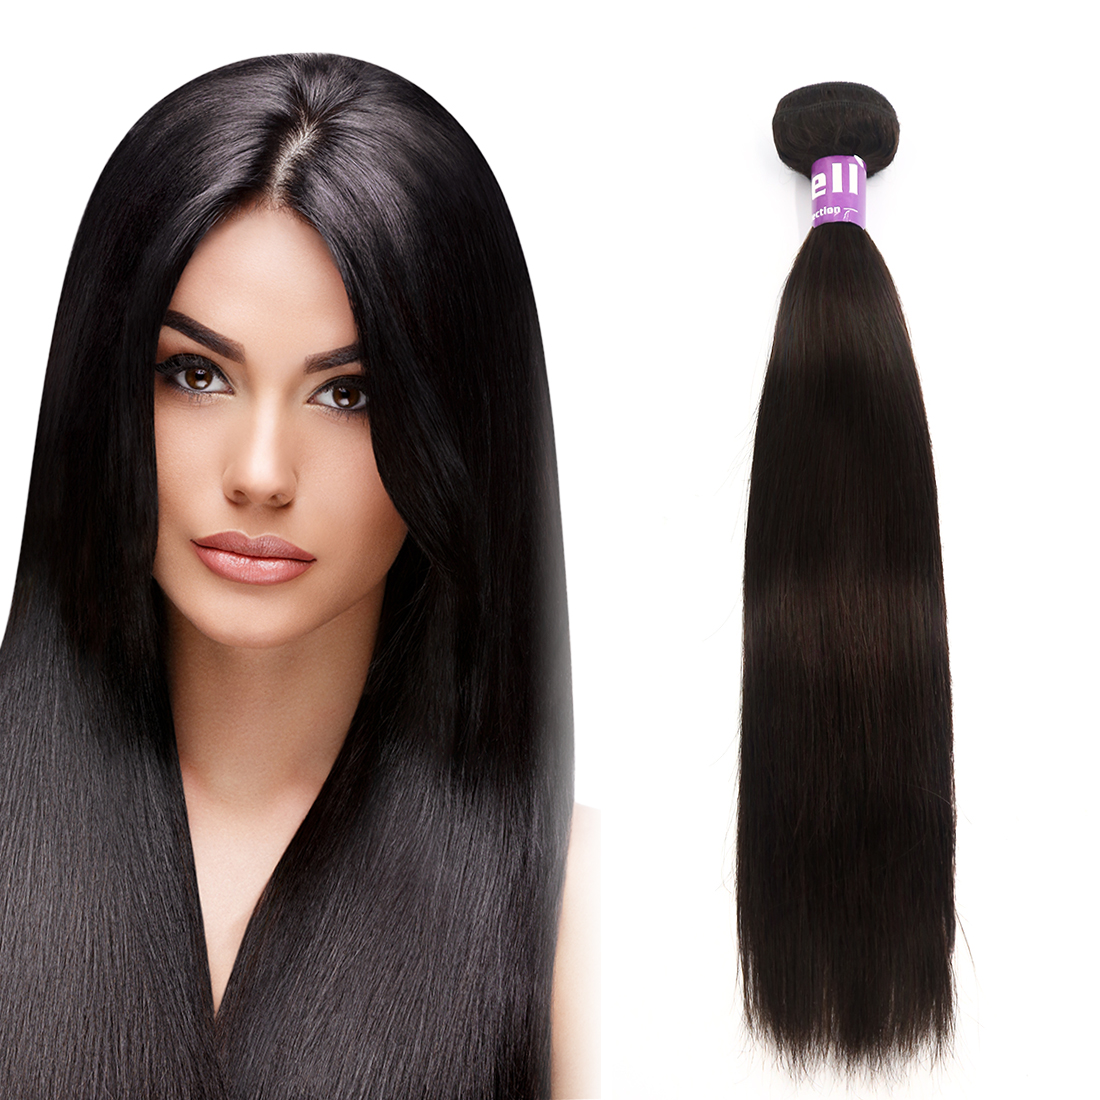 "Peruvian Virgin Silky Straight Human Hair Weave Extensions 7A 18"" 1 Bundle"